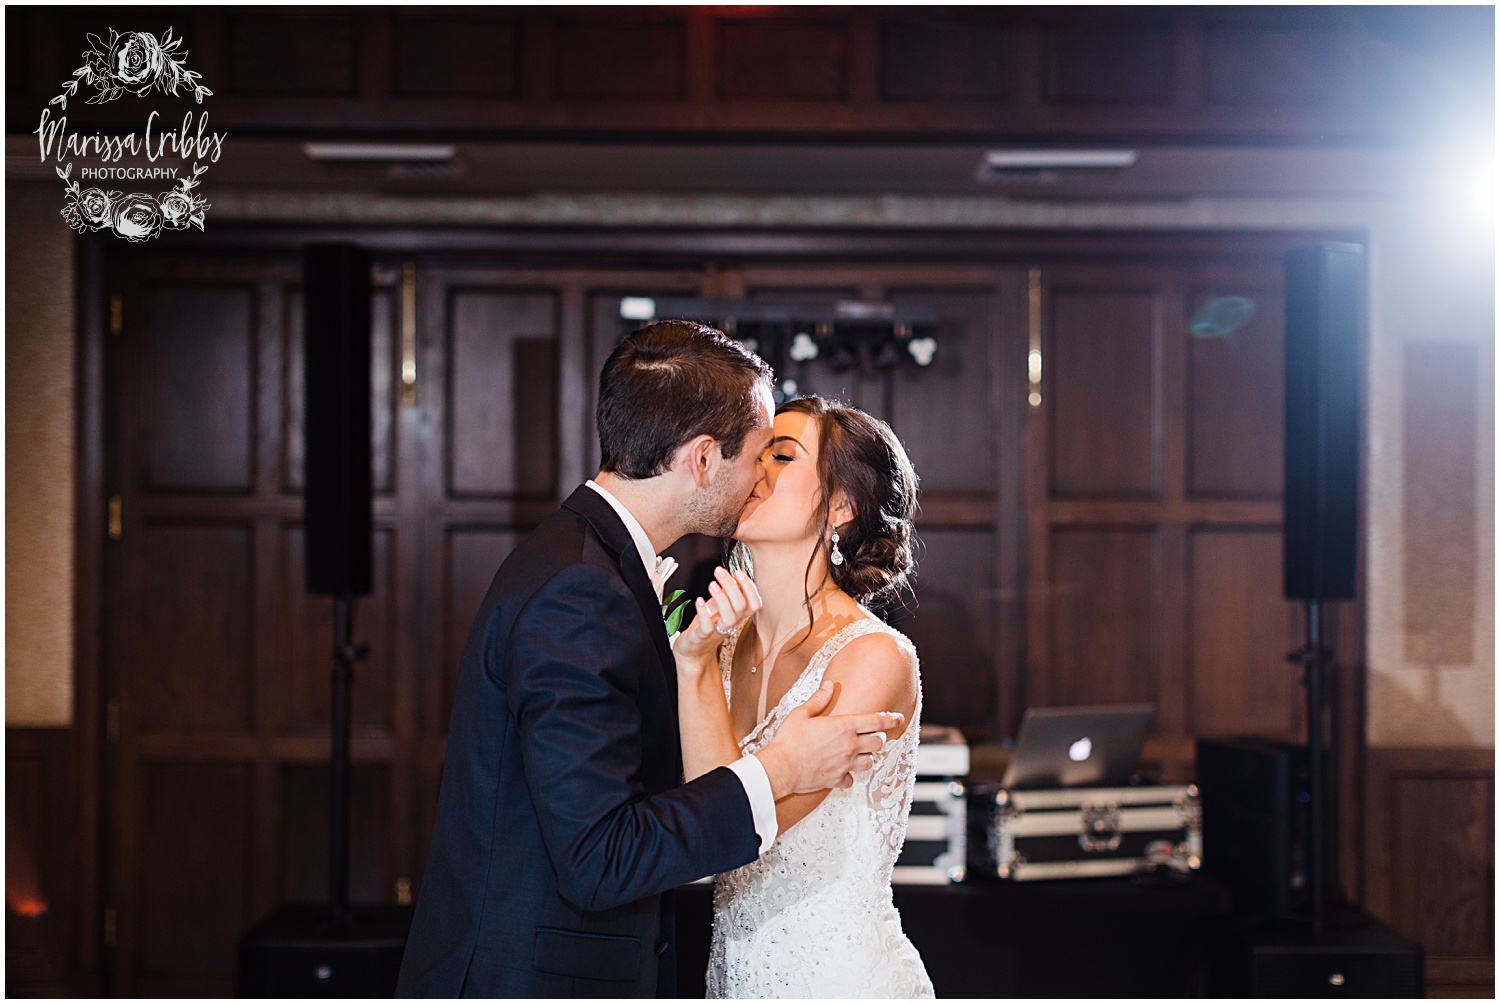 MEGAN & DEREK WEDDING BLOG | MARISSA CRIBBS PHOTOGRAPHY_8203.jpg